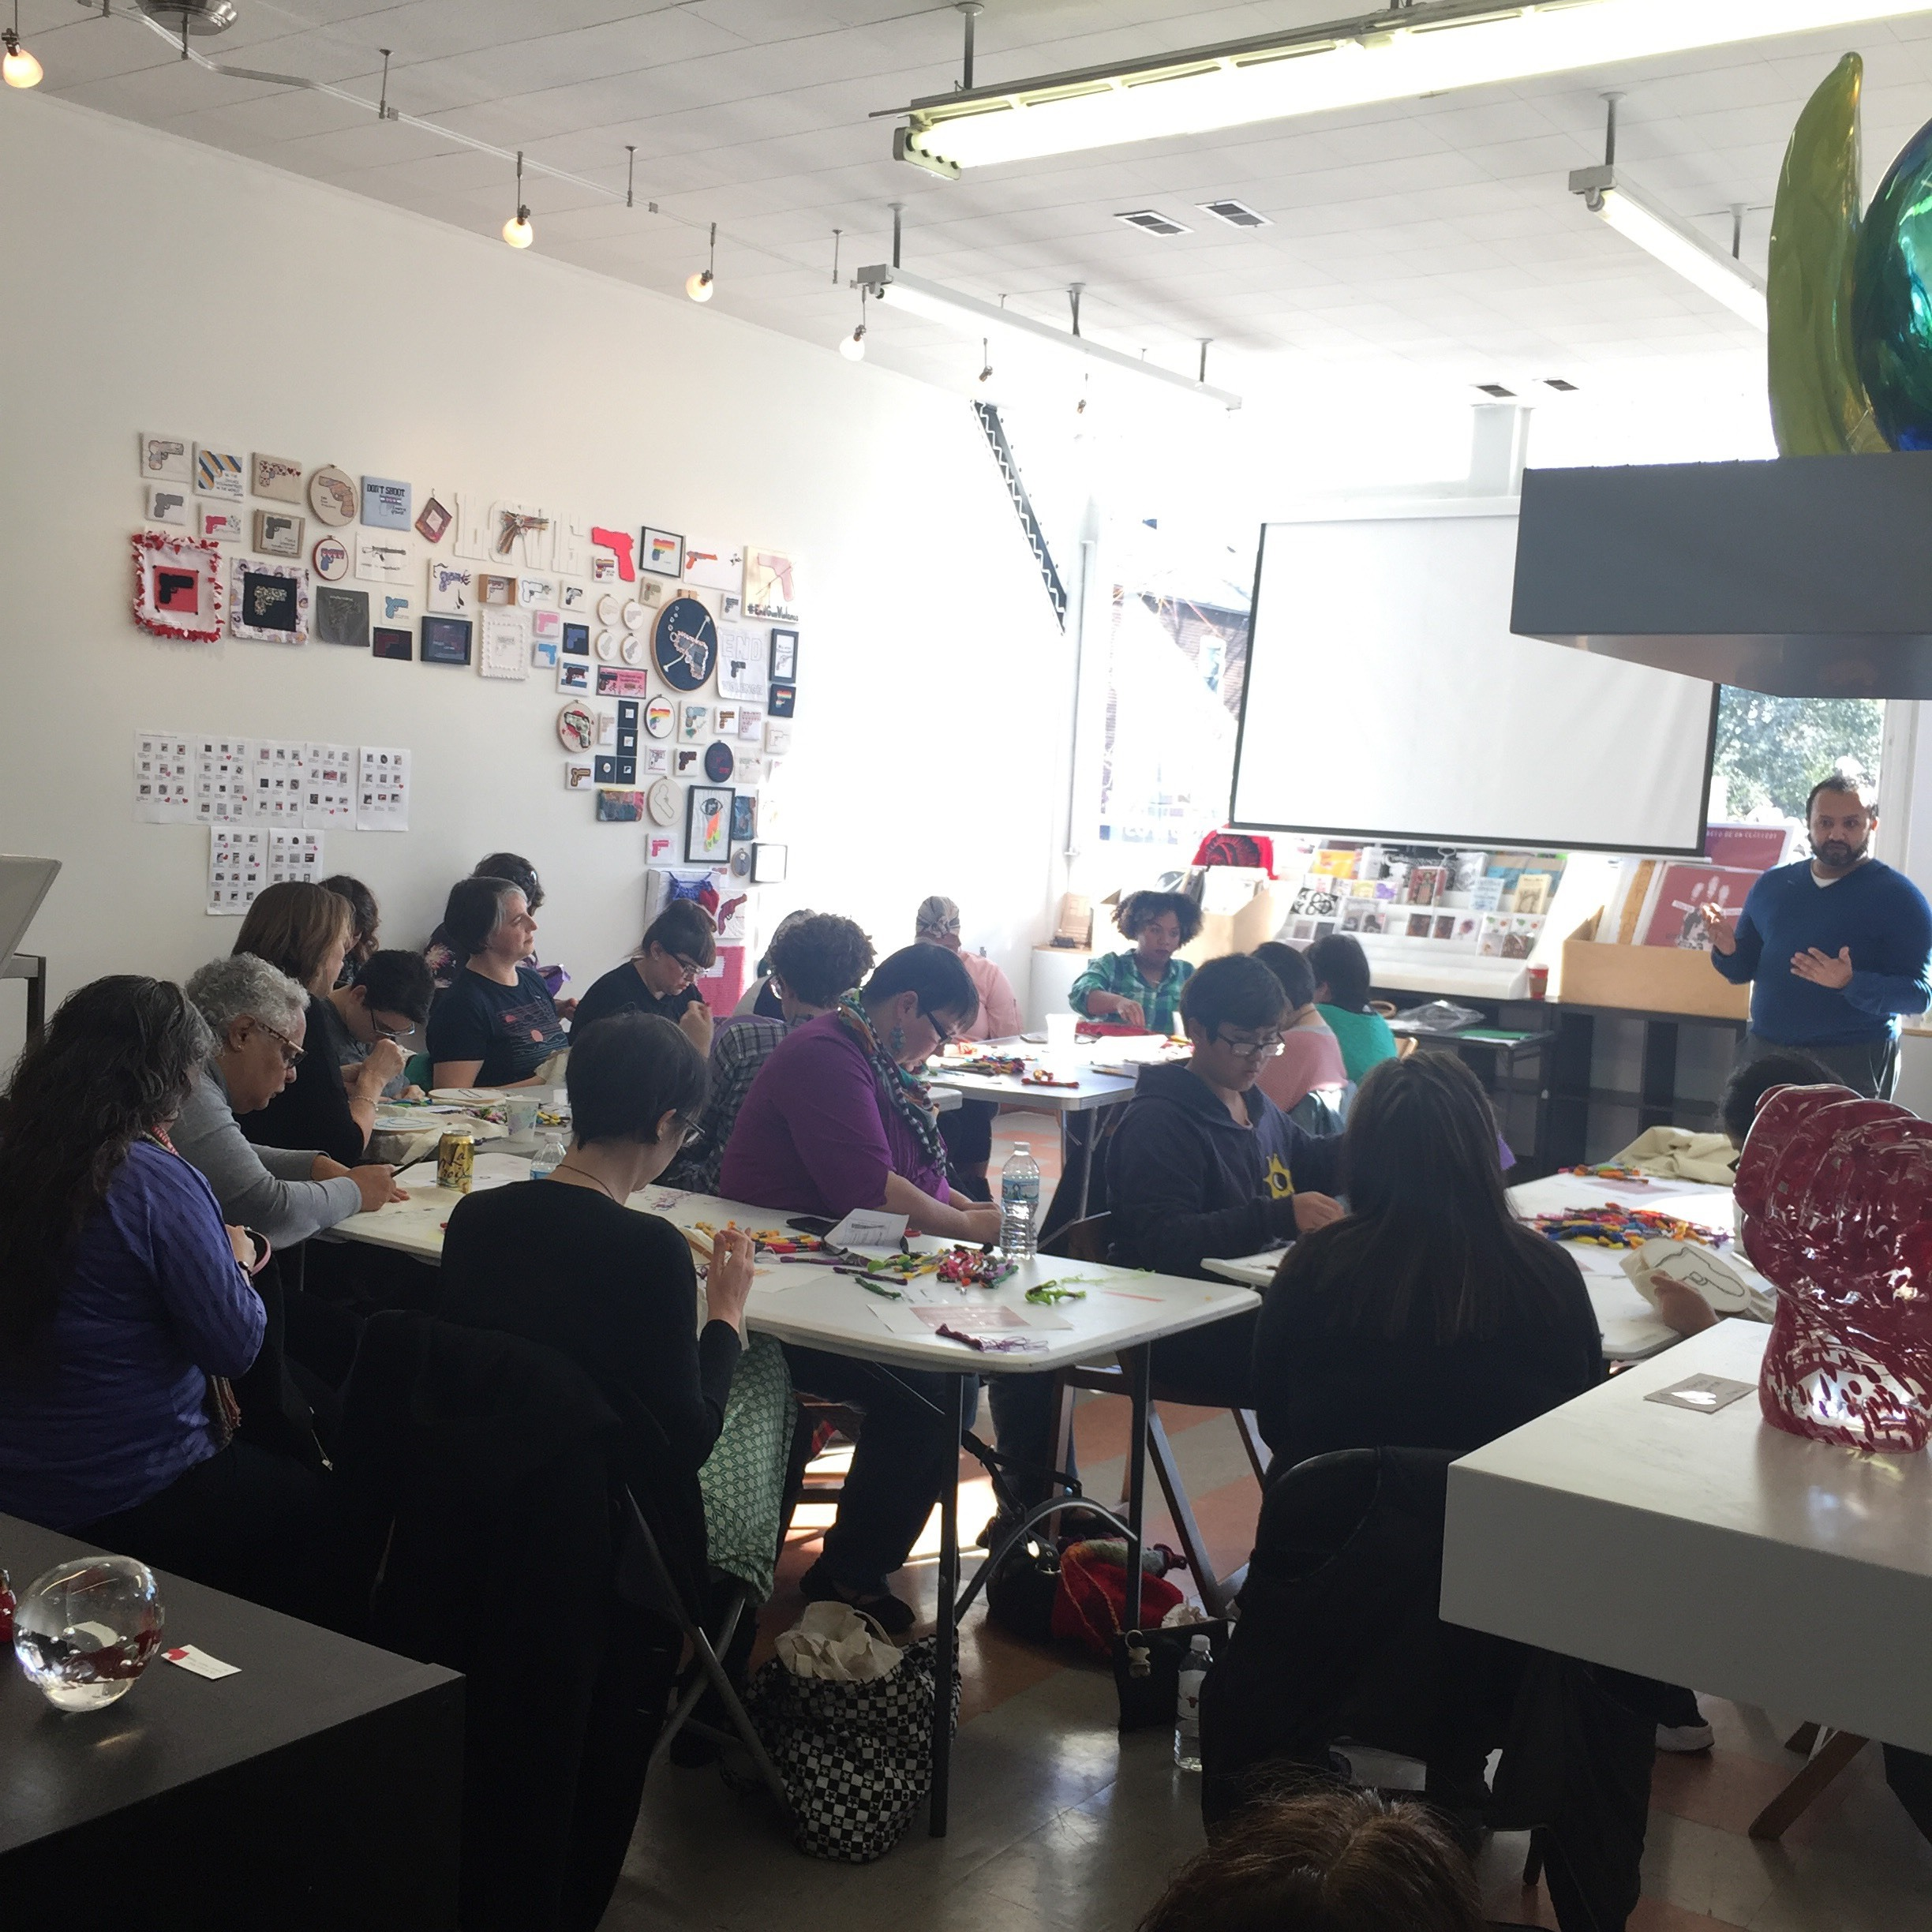 Free community embroidery workshop and dialogue